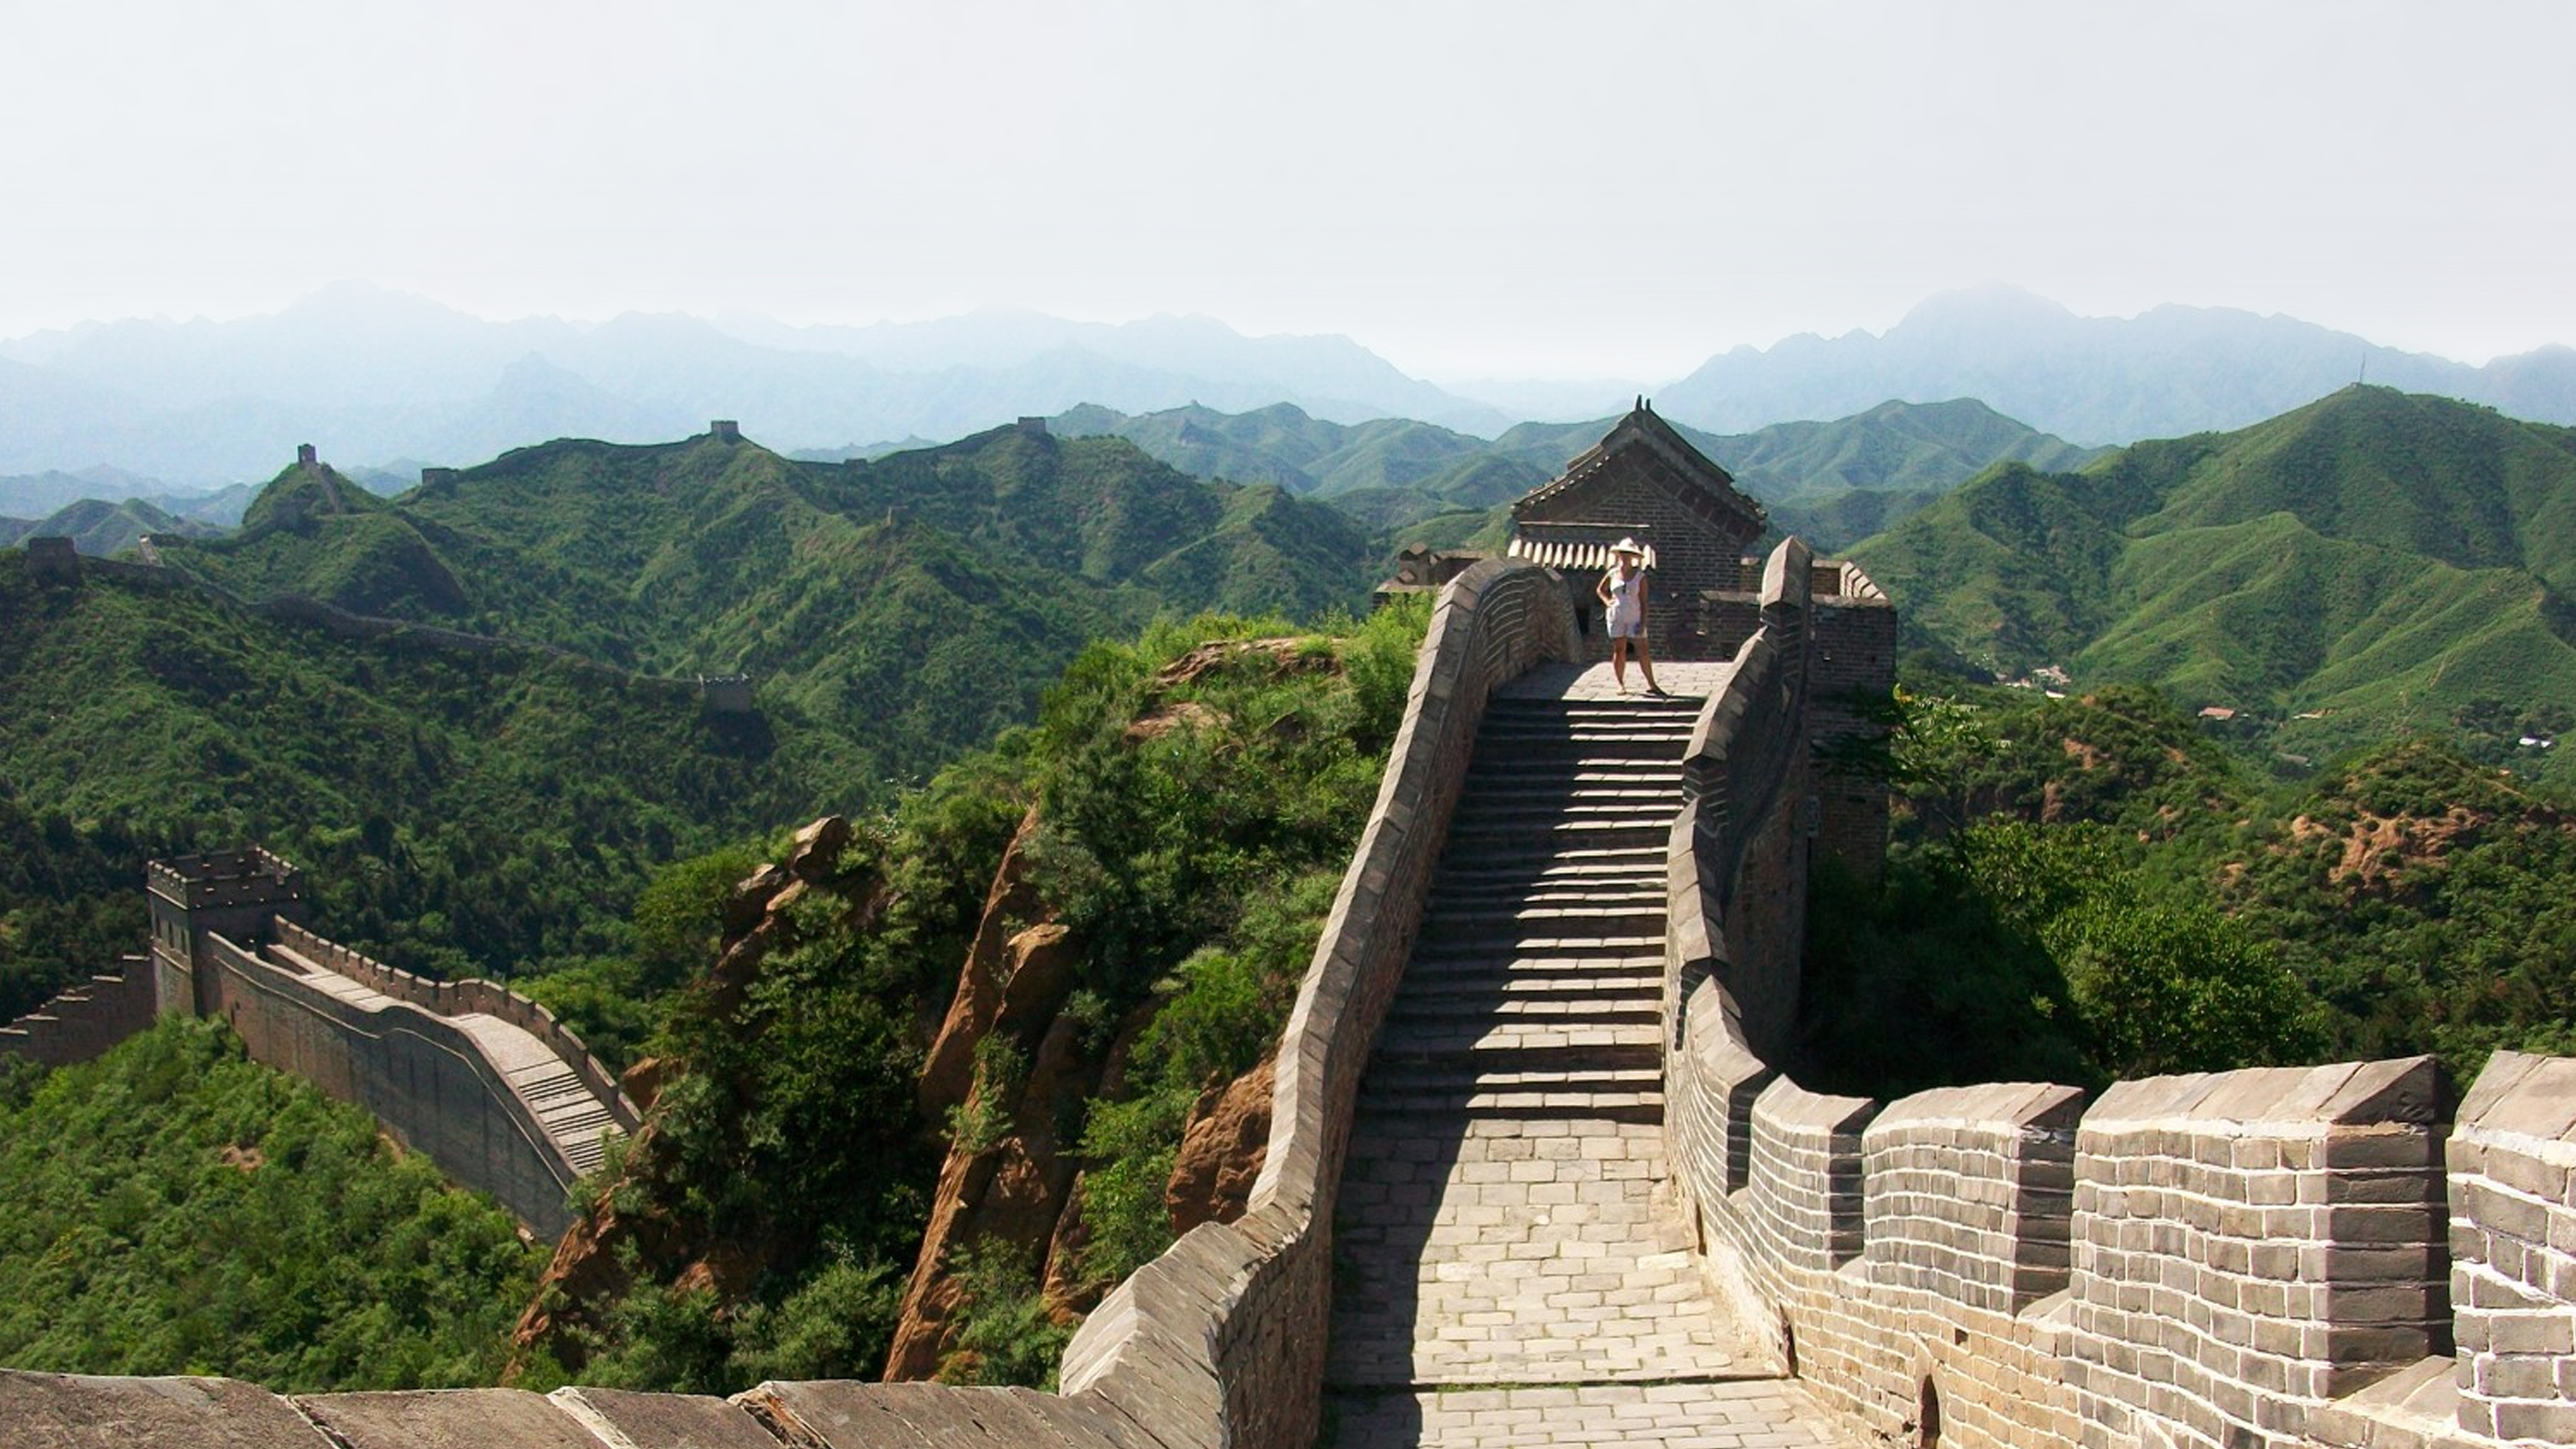 Students visit Beijing, Yangtze, and Shanghai, China